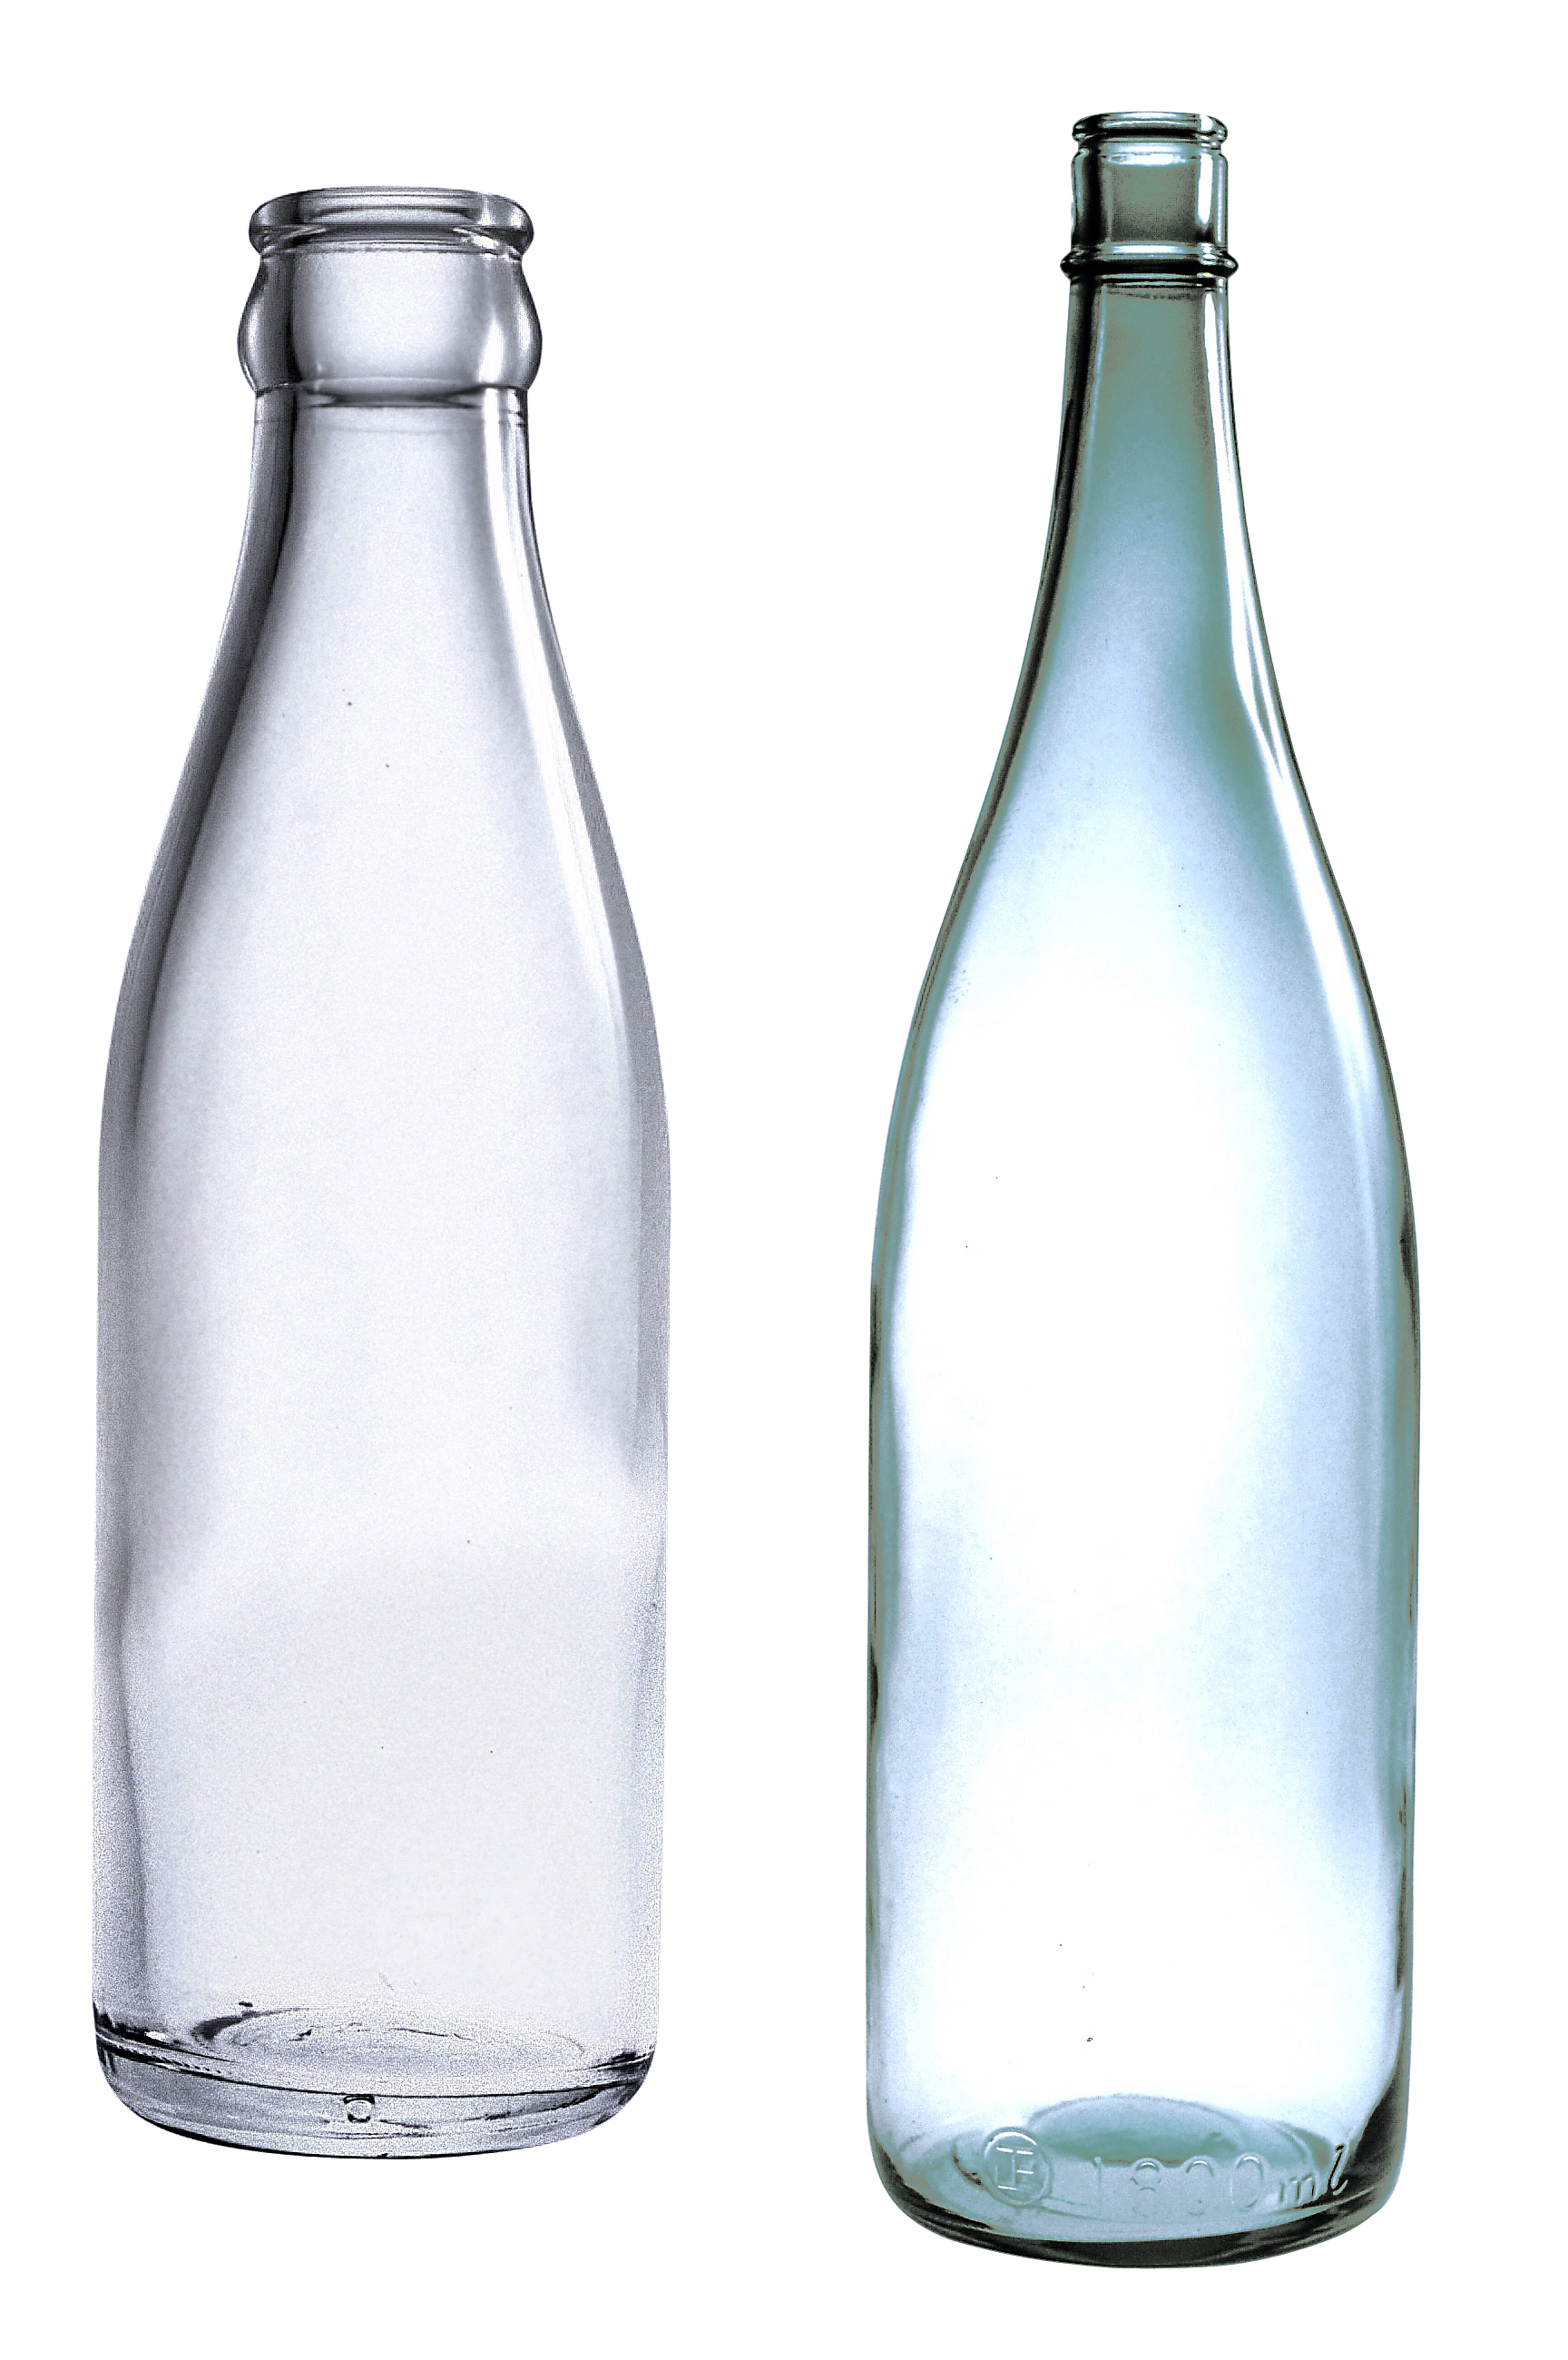 Clear bottle png. Empty image purepng free